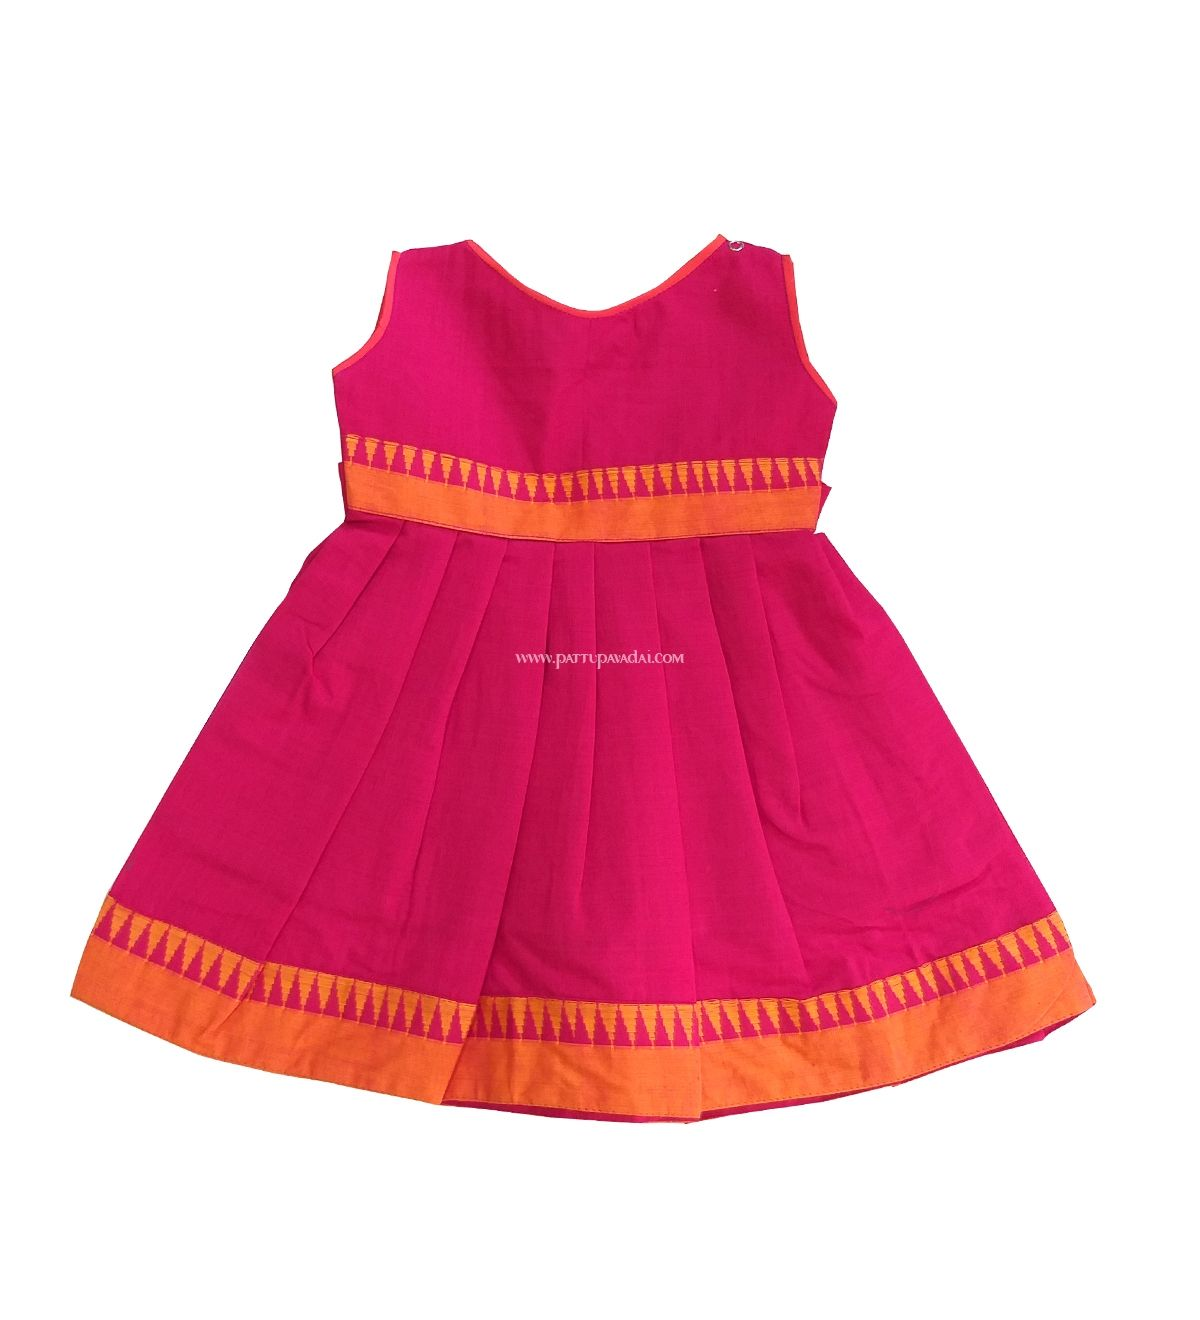 511d60d50cd5 Lovely pink cotton frocks for just born 3 months kids to 2 years ...